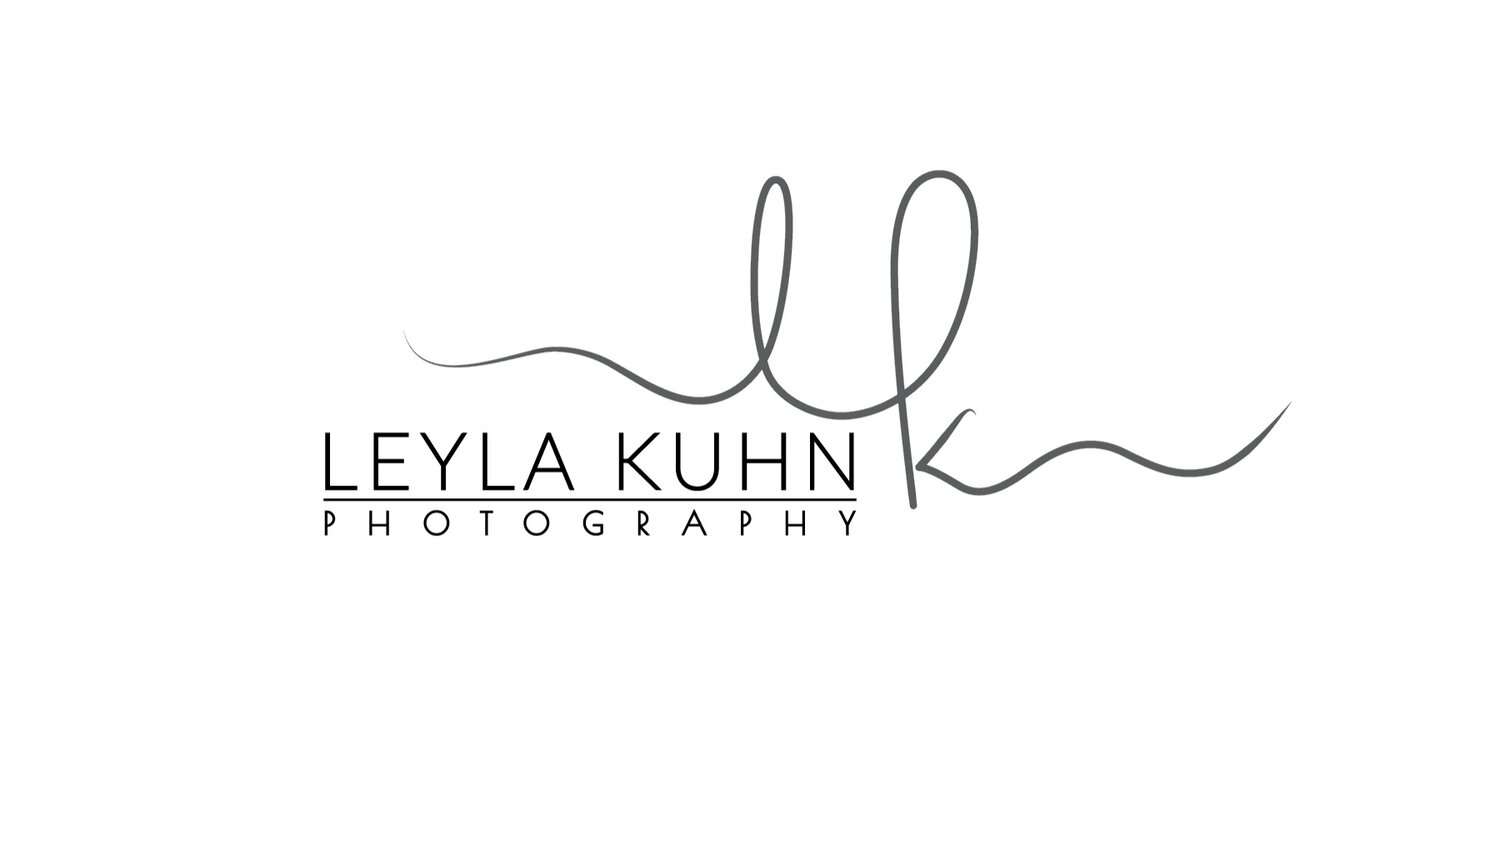 Leyla Kuhn Photography